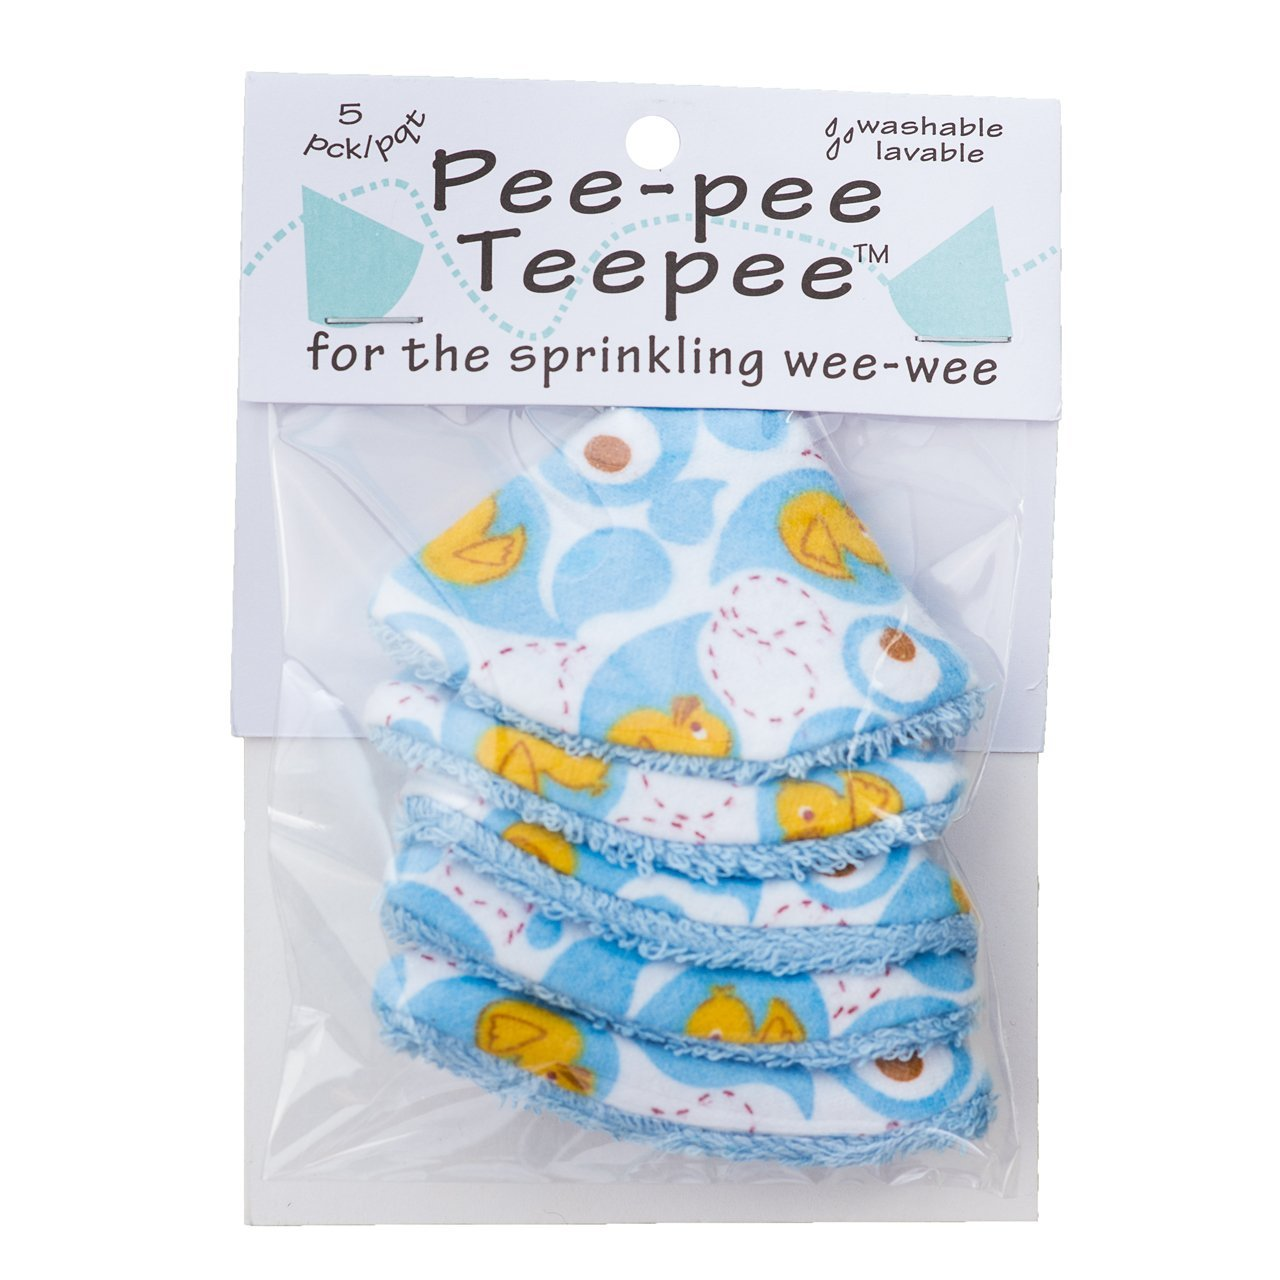 Pee-pee Teepee Rubber Ducky Blue - Cello Bag Beba Bean PT3085